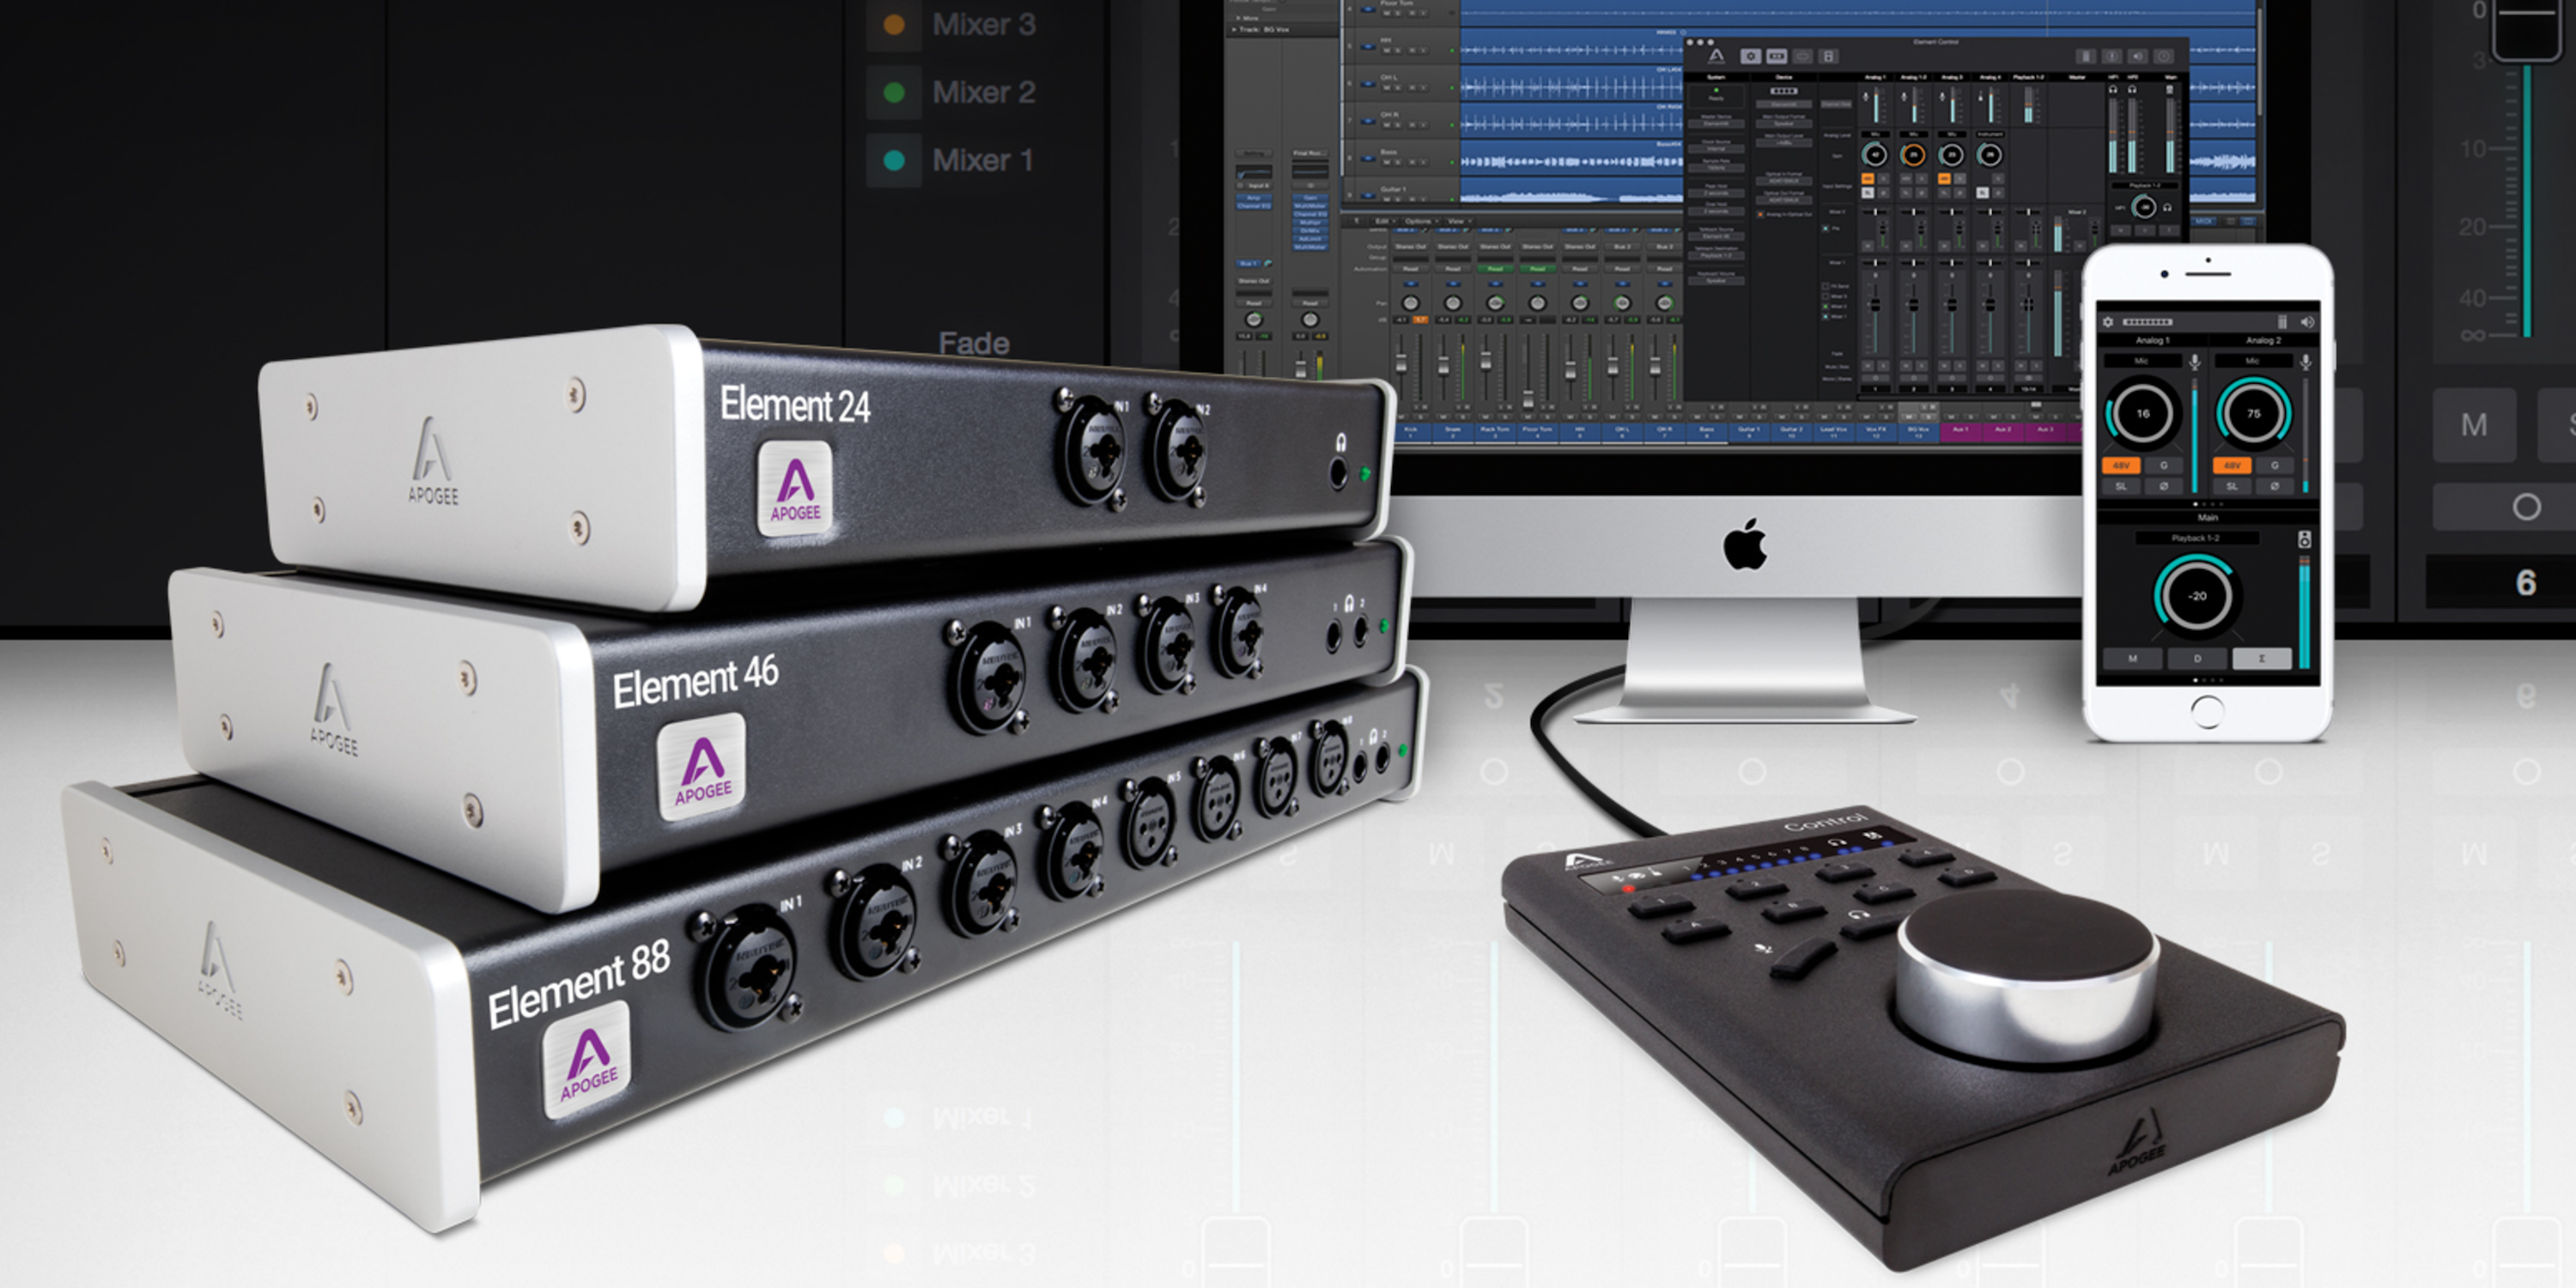 Logic Pros Review Apogee S New Element Audio Interfaces W Dedicated Mac Ios Apps Remote Accessory 9to5mac